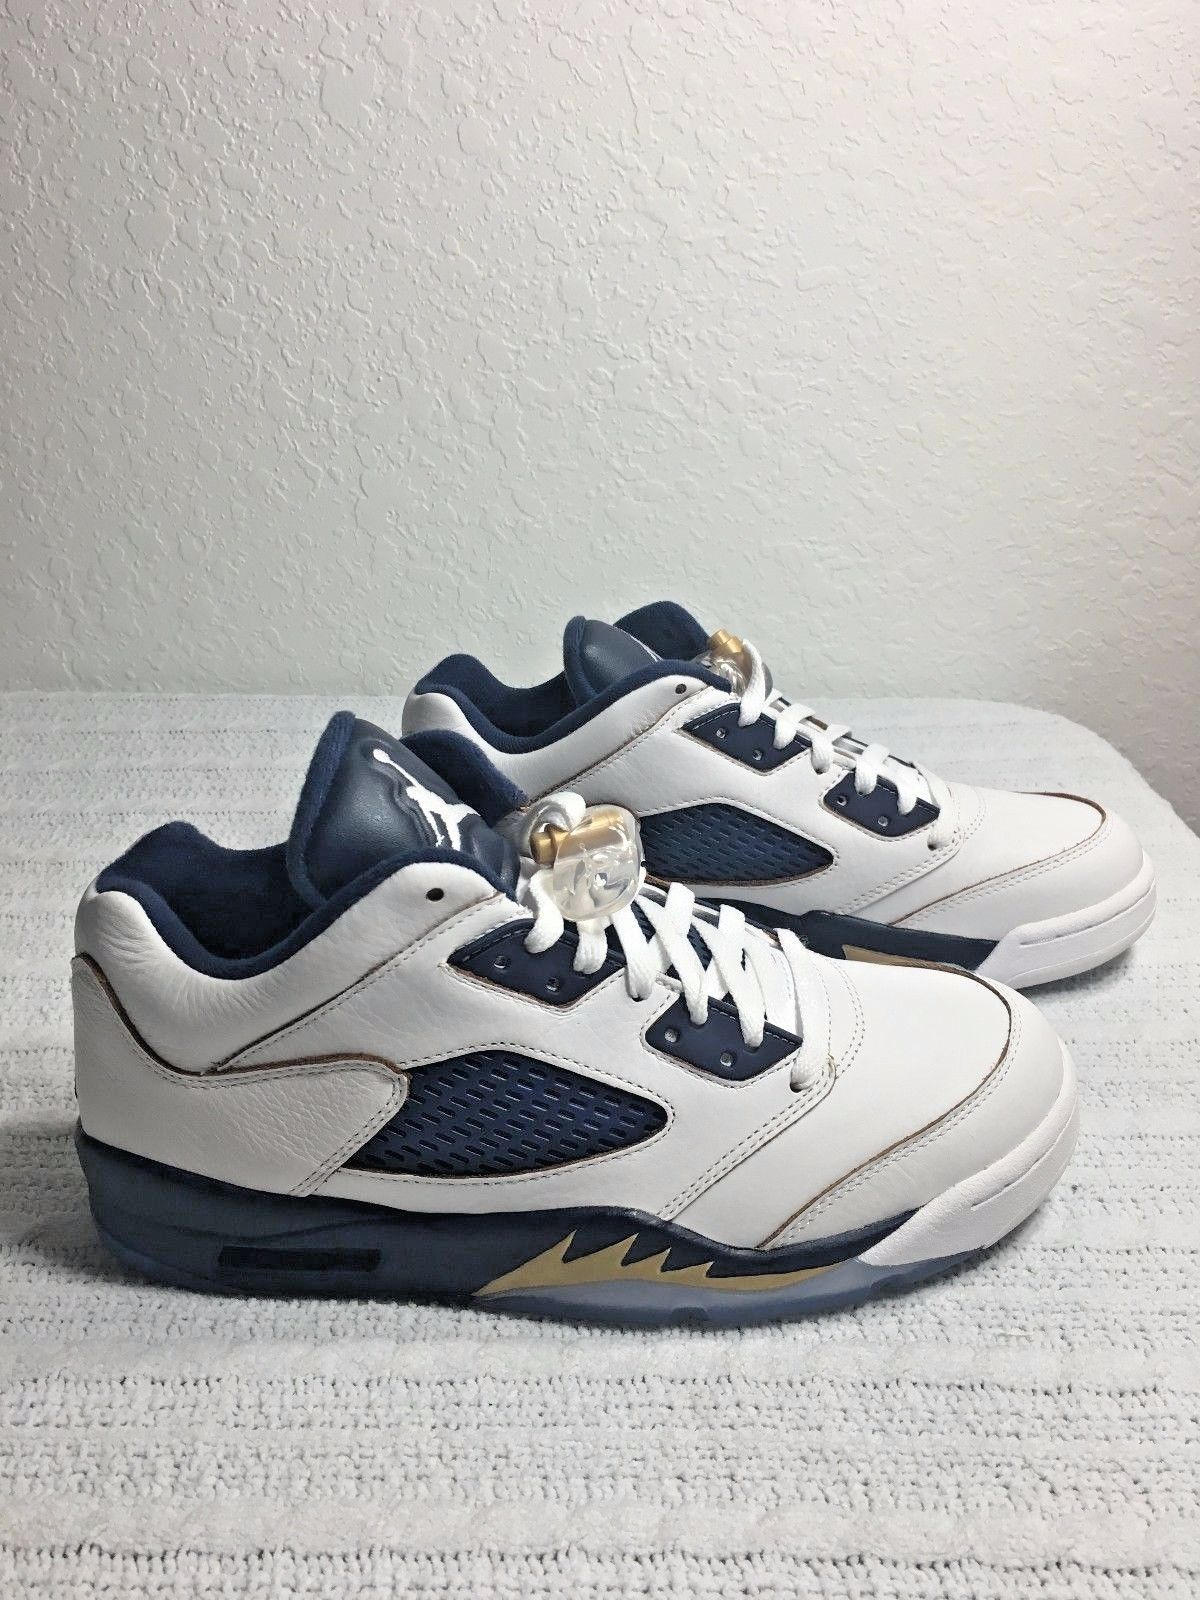 brand new 2bf76 1f120 S l1600. S l1600. Previous. NIKE AIR JORDAN 5 RETRO LOW DUNK FROM ABOVE MEN  SIZE 10 NEW 819171 135 · NIKE AIR JORDAN ...